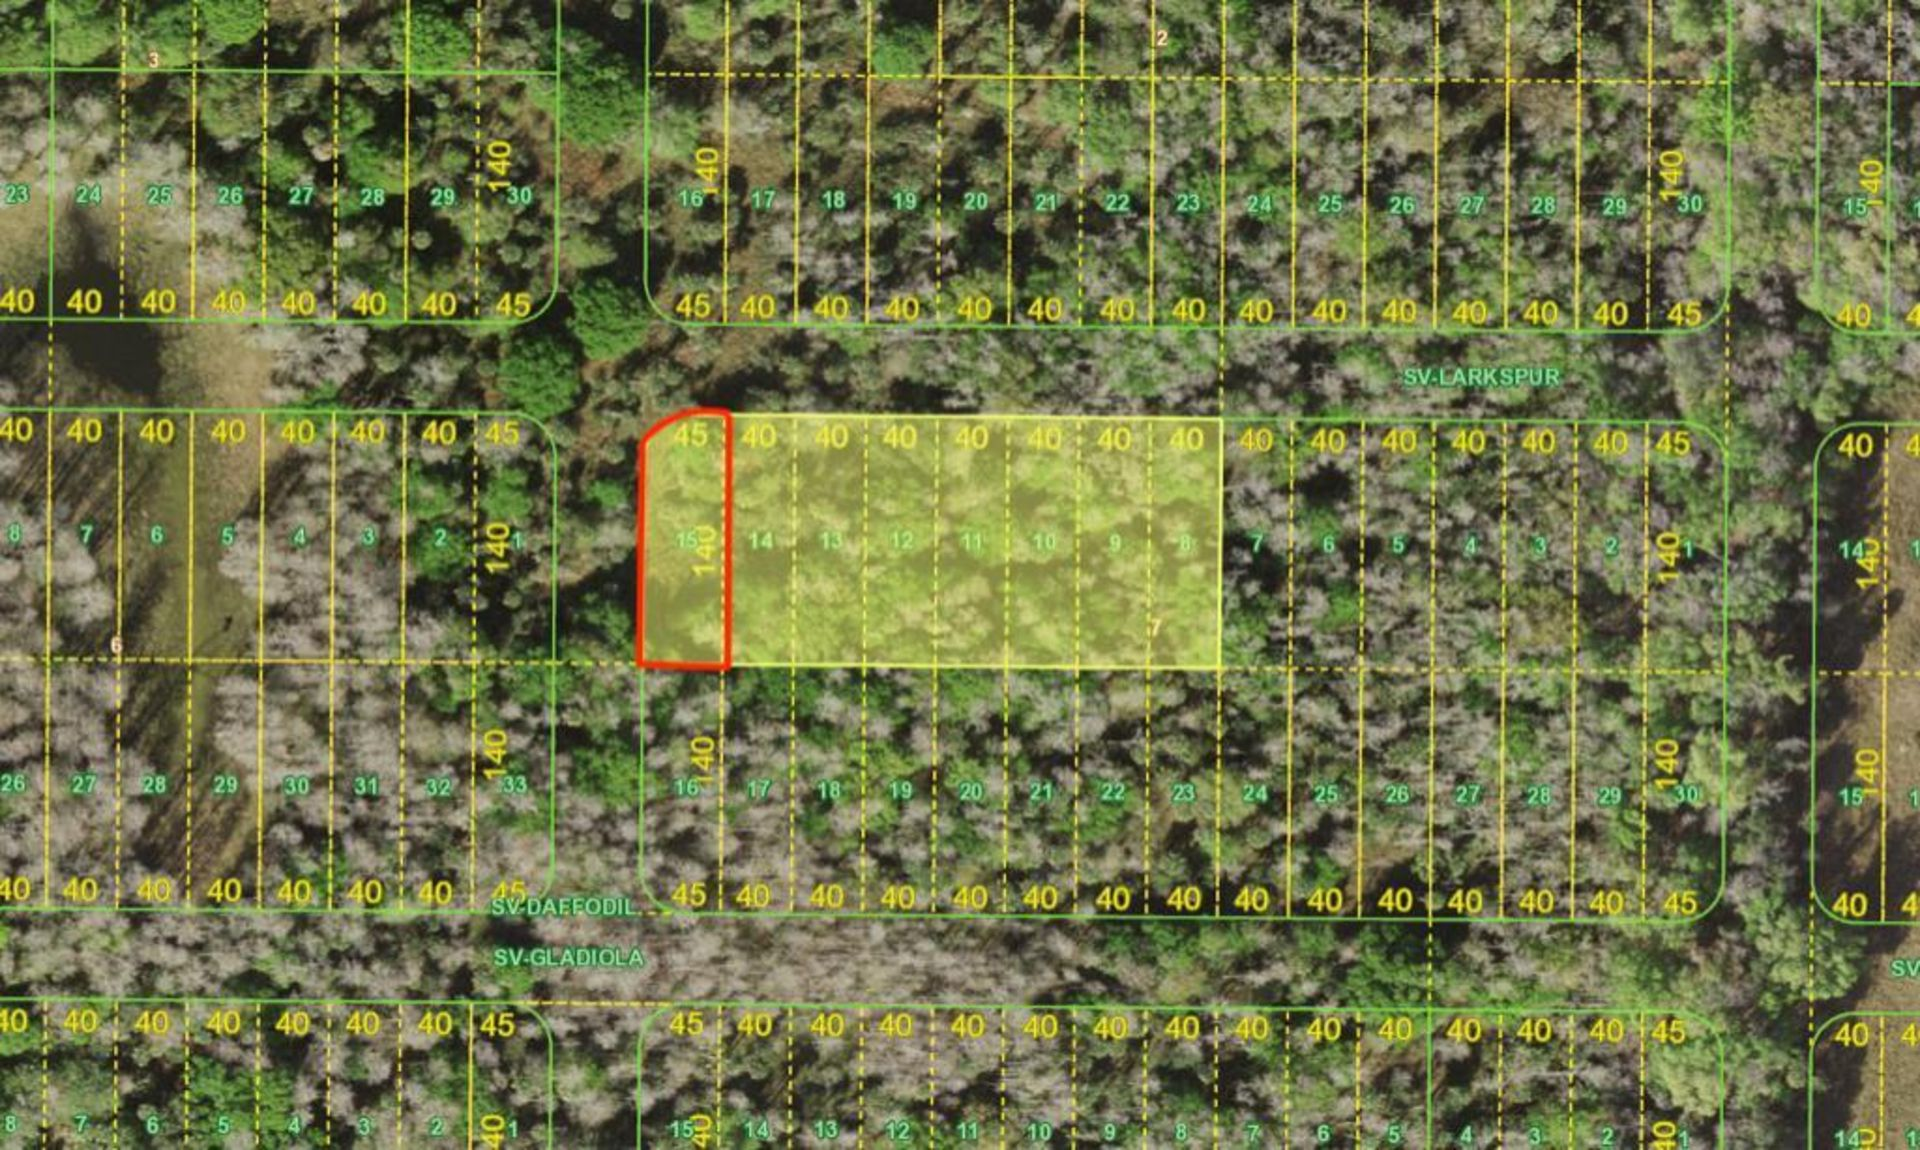 Own Property in the Sunshine State! Adjacent to Lot 16! - Image 2 of 3